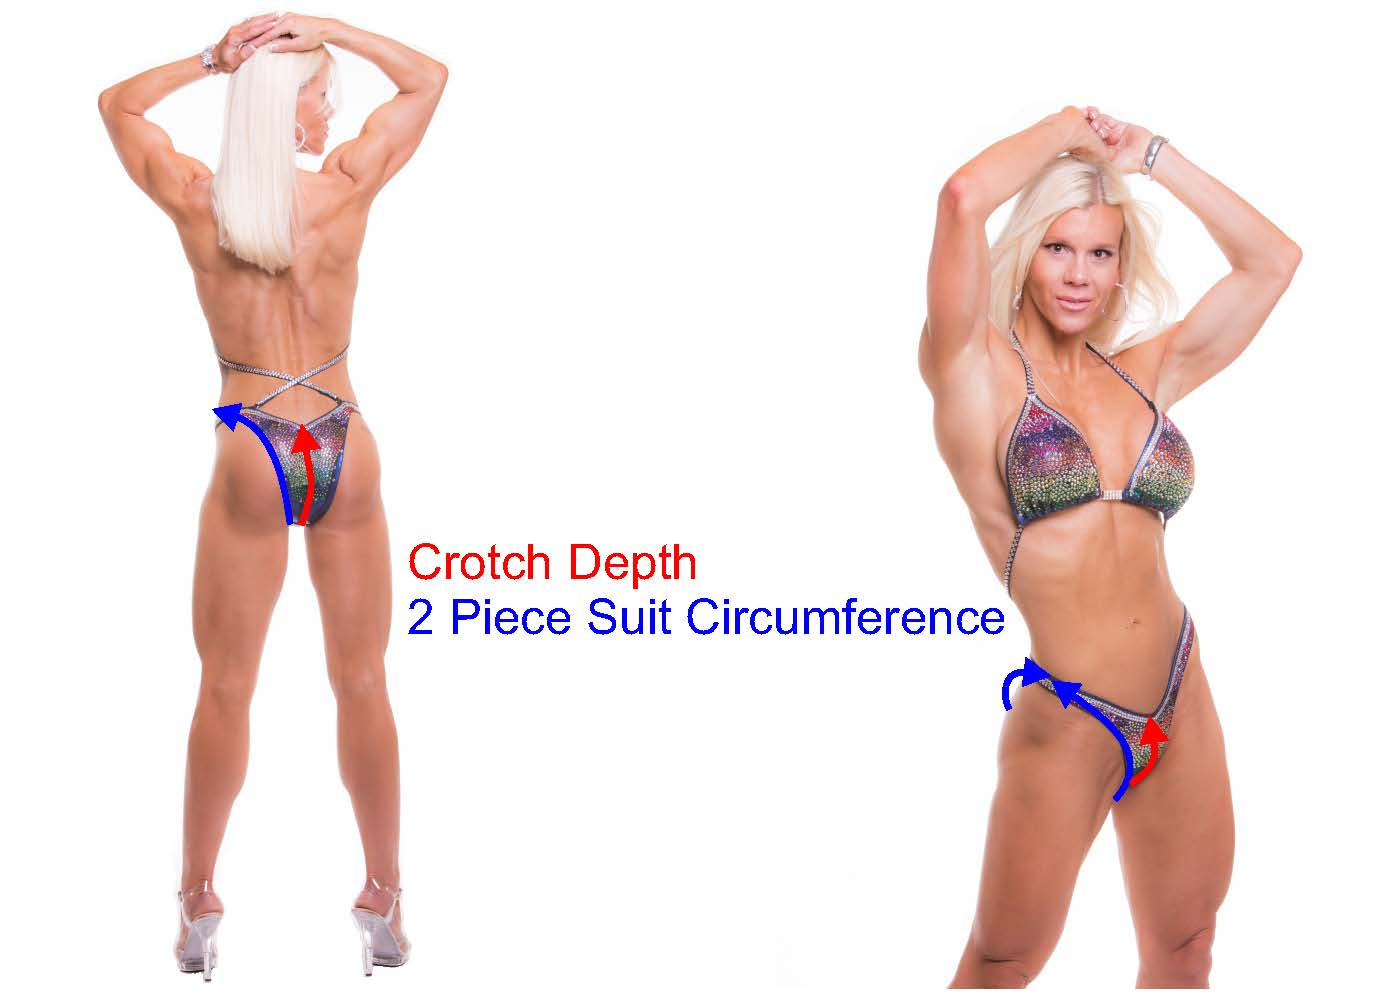 How to measure crotch depth. Perfect Fit Gear